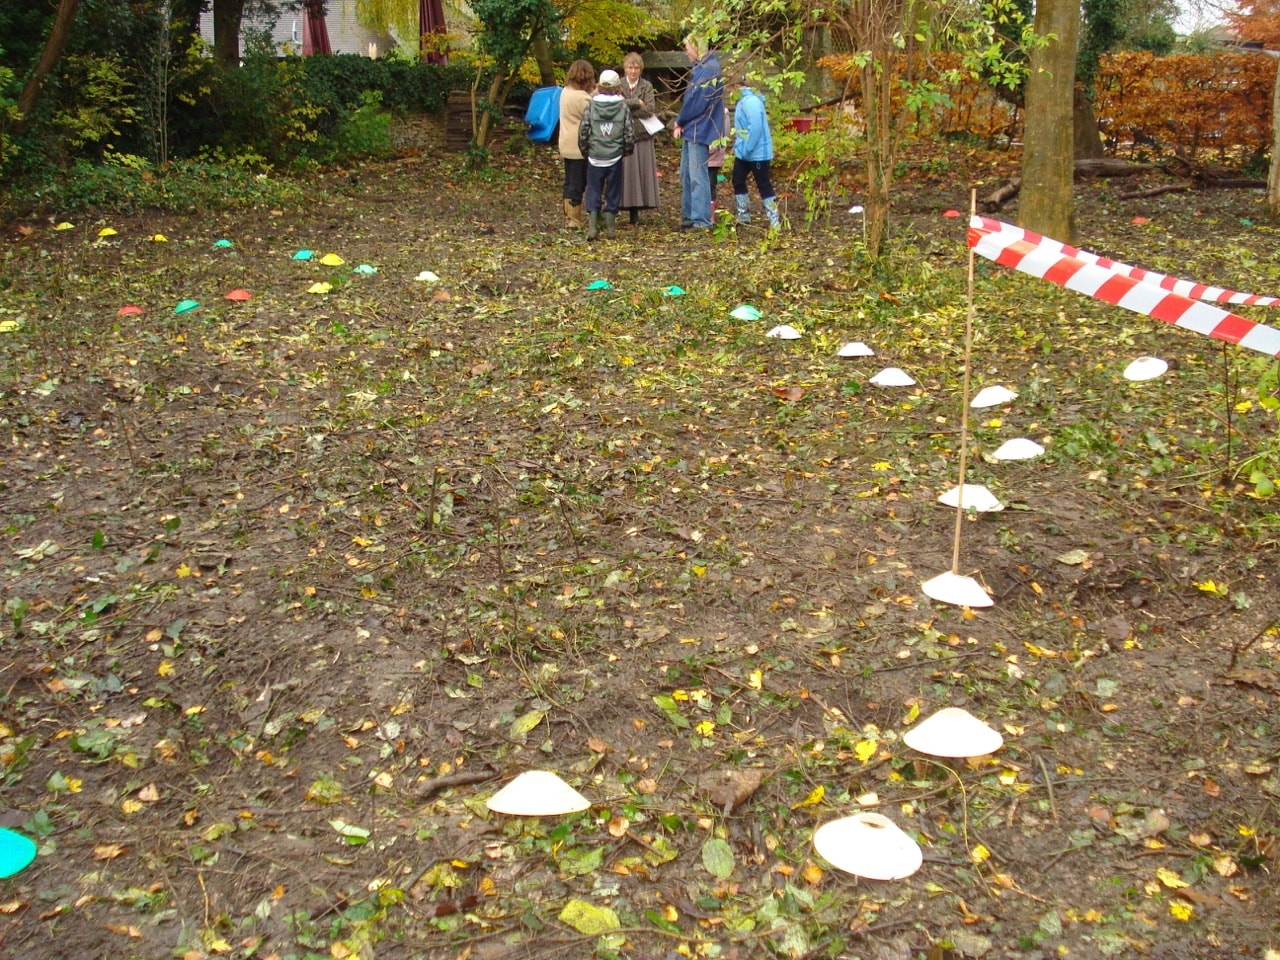 Planning markers on the ground